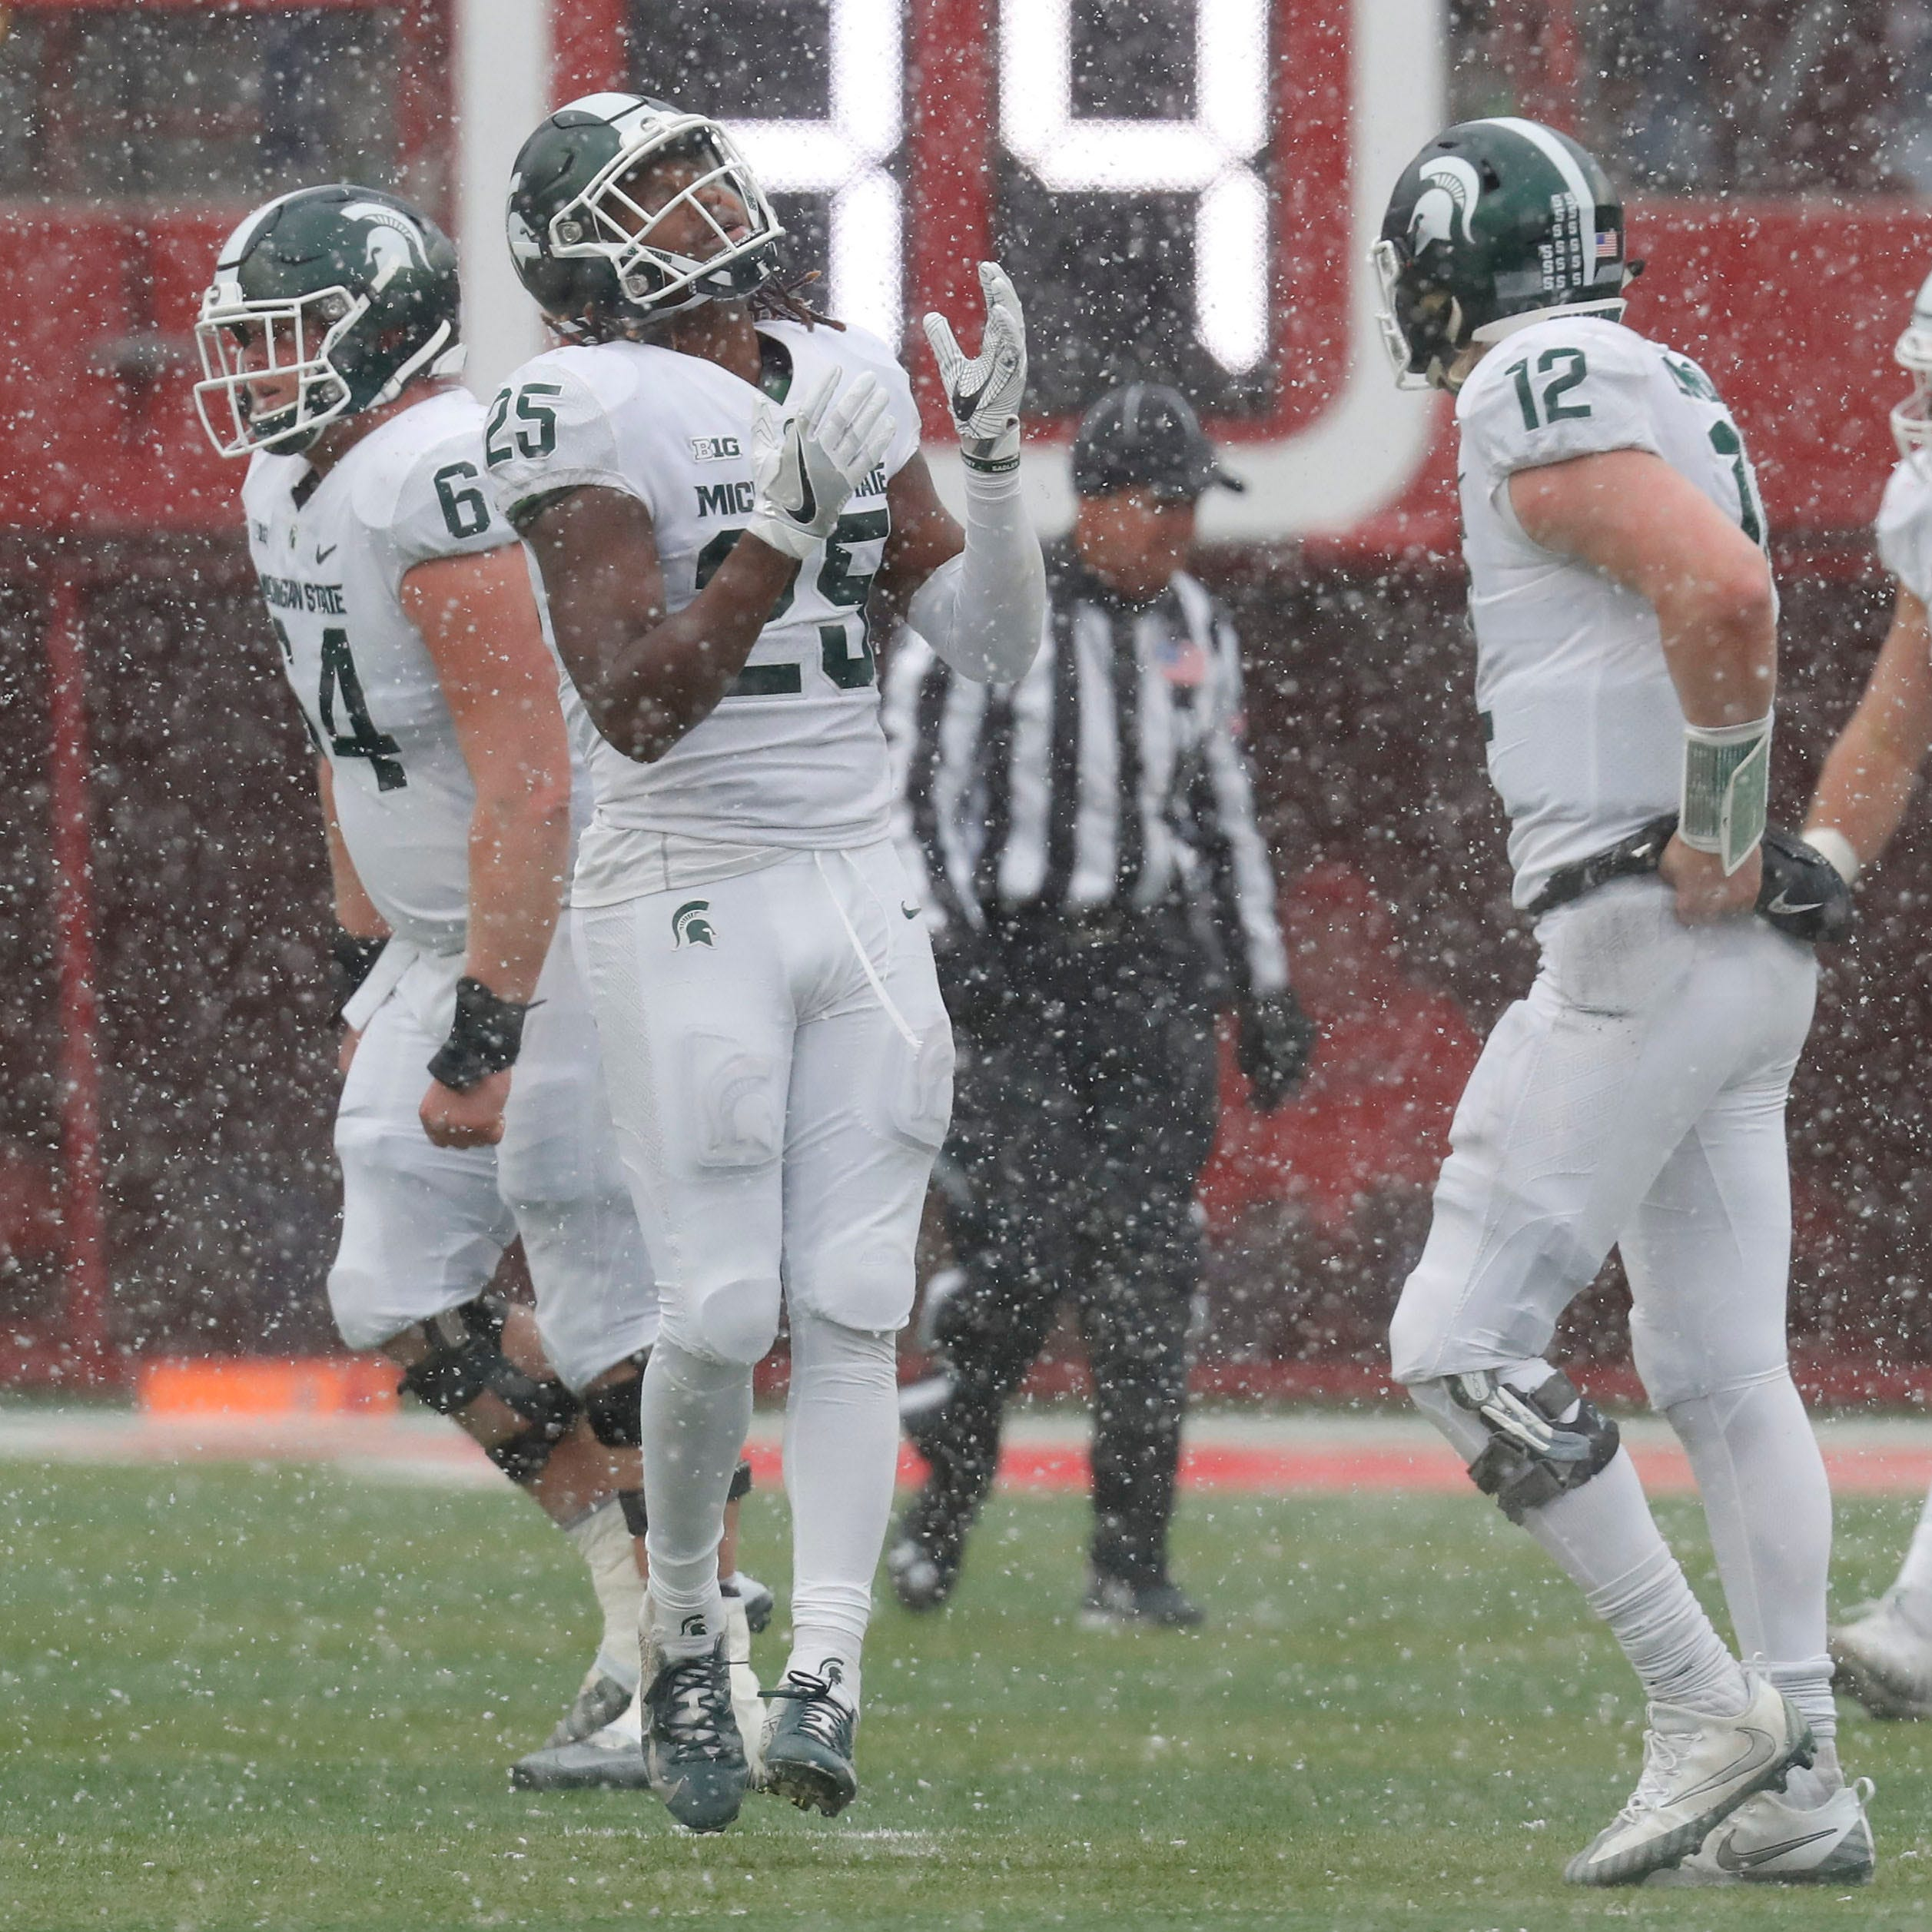 Couch: Michigan State's offensive play calling at Nebraska shows new voices are needed